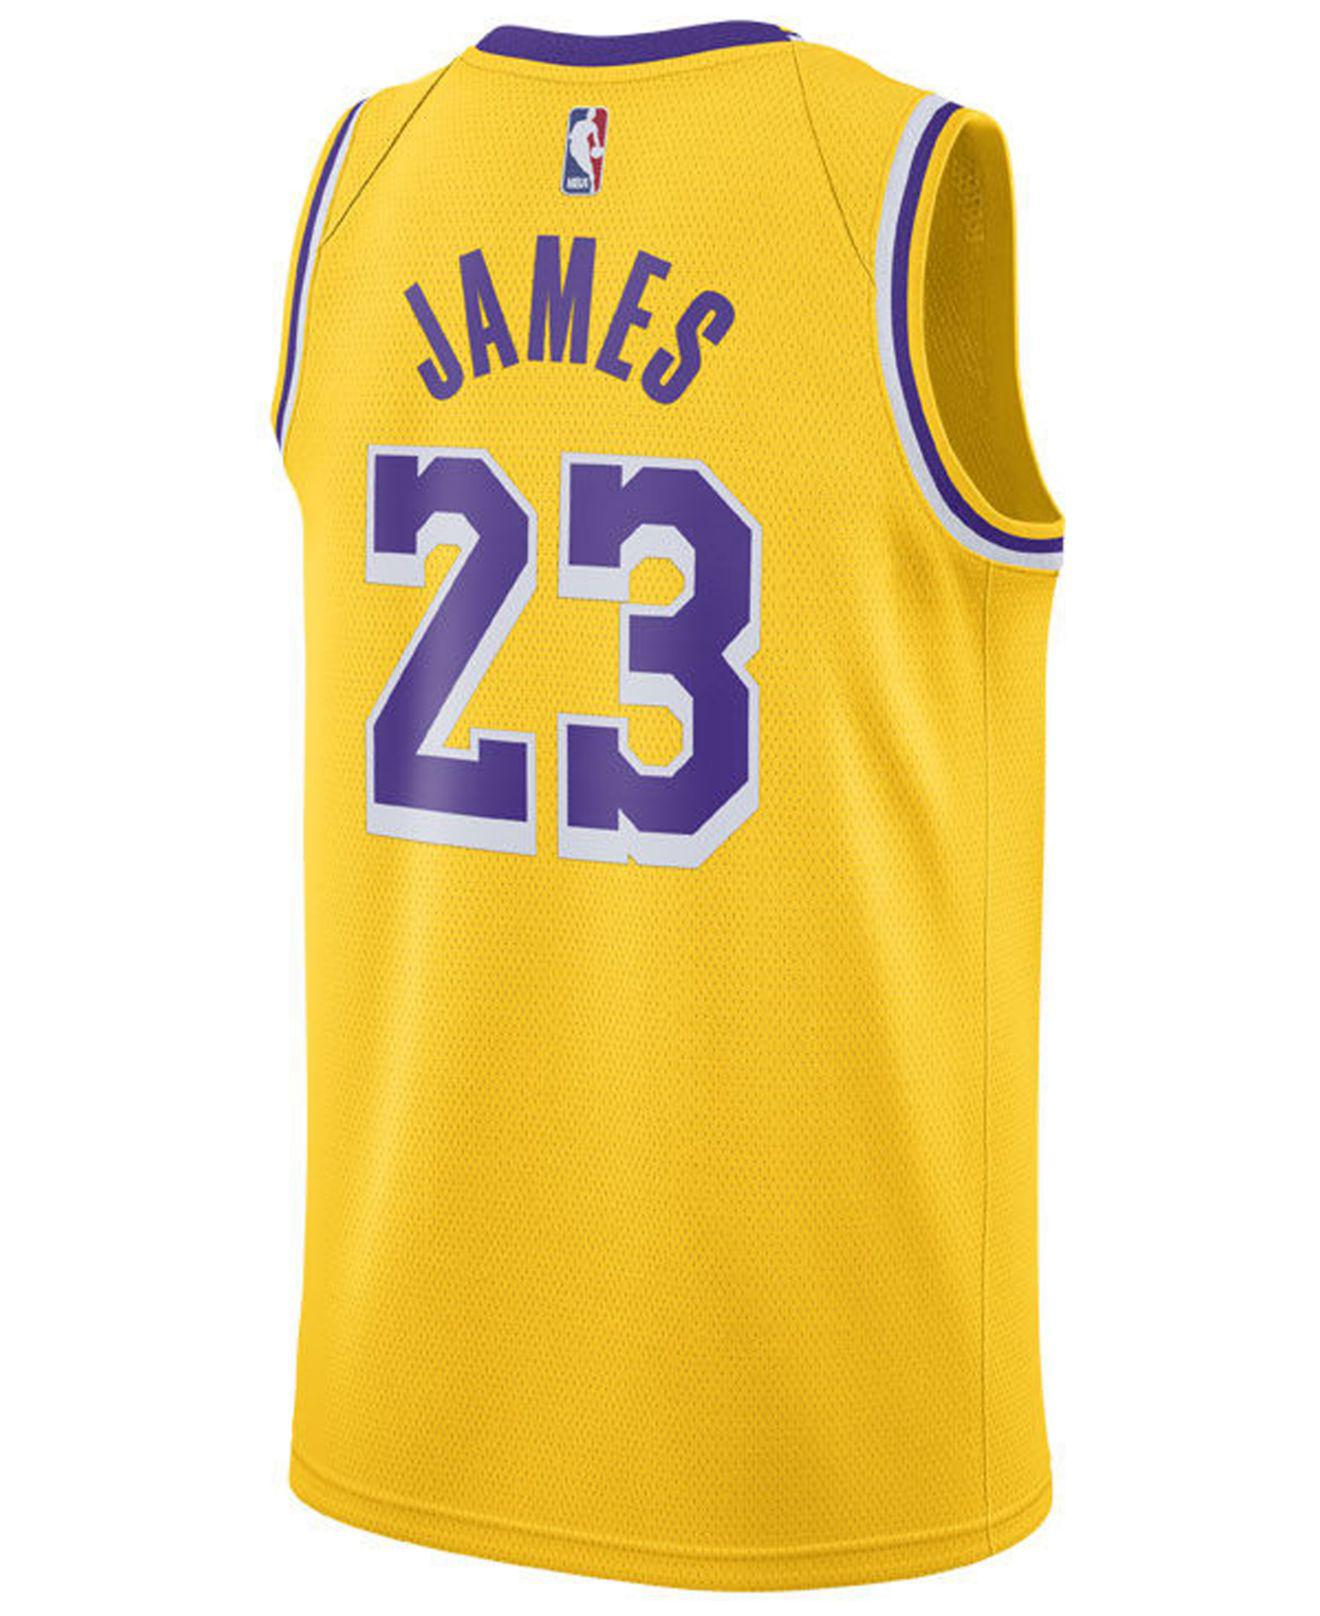 Lyst - Nike Lebron James Los Angeles Lakers Icon Swingman Jersey in Yellow  for Men e9c8af8e6